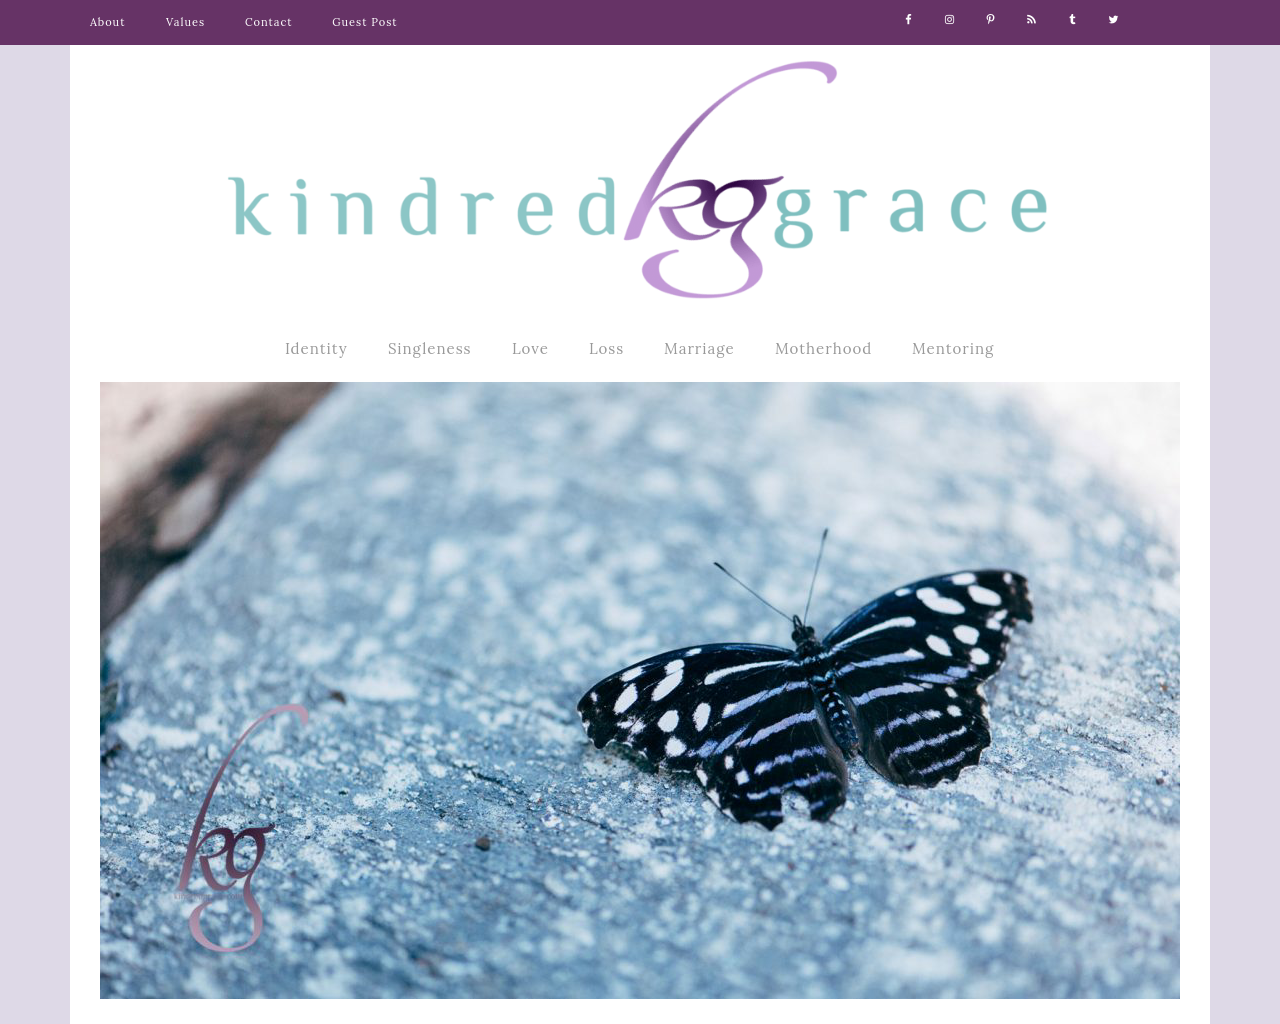 Kindred-Grace-Advertising-Reviews-Pricing